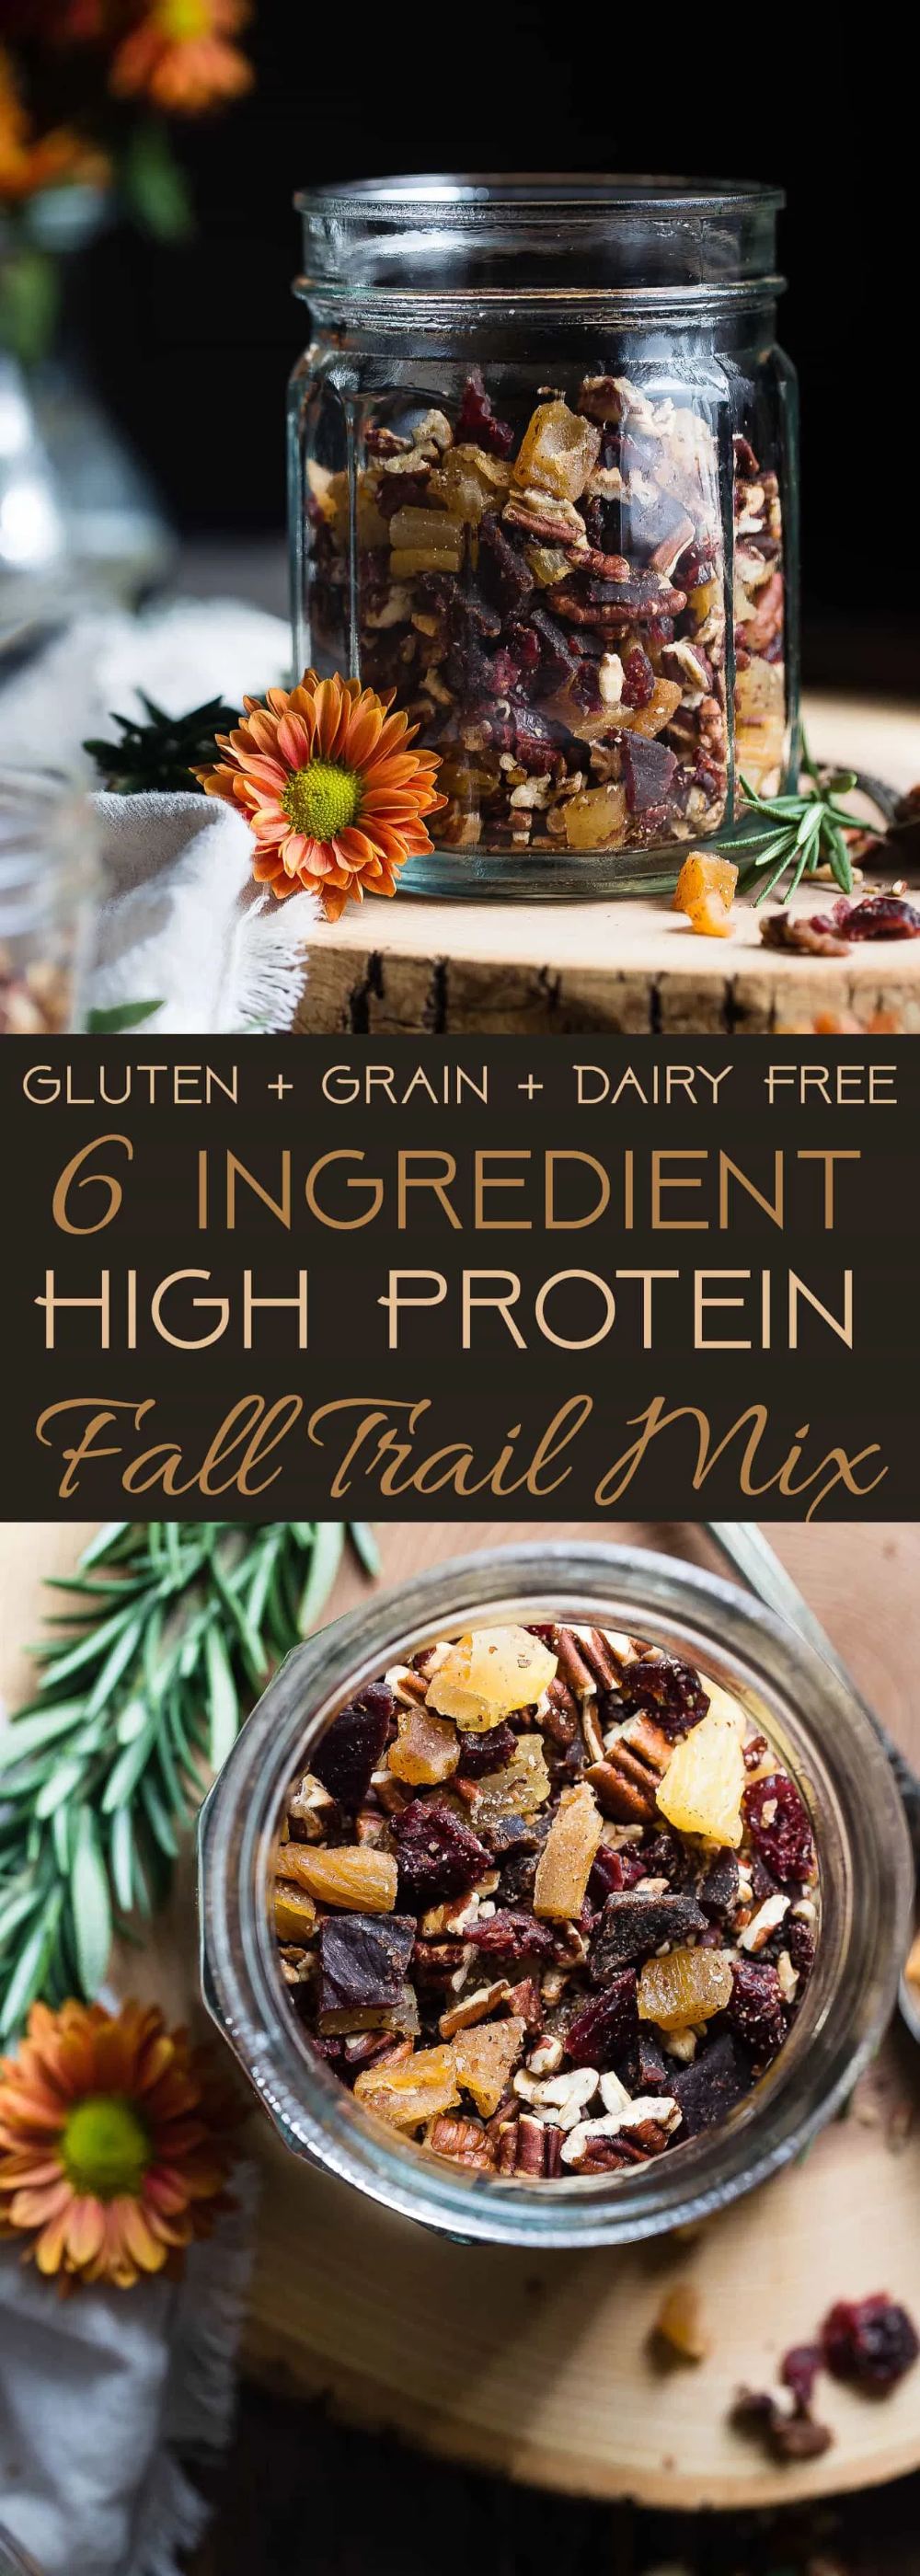 #Faith #Fall #Fitness #food #mix #Protein #Recipe #studentenfutter #studentenfutter rezepte #student...